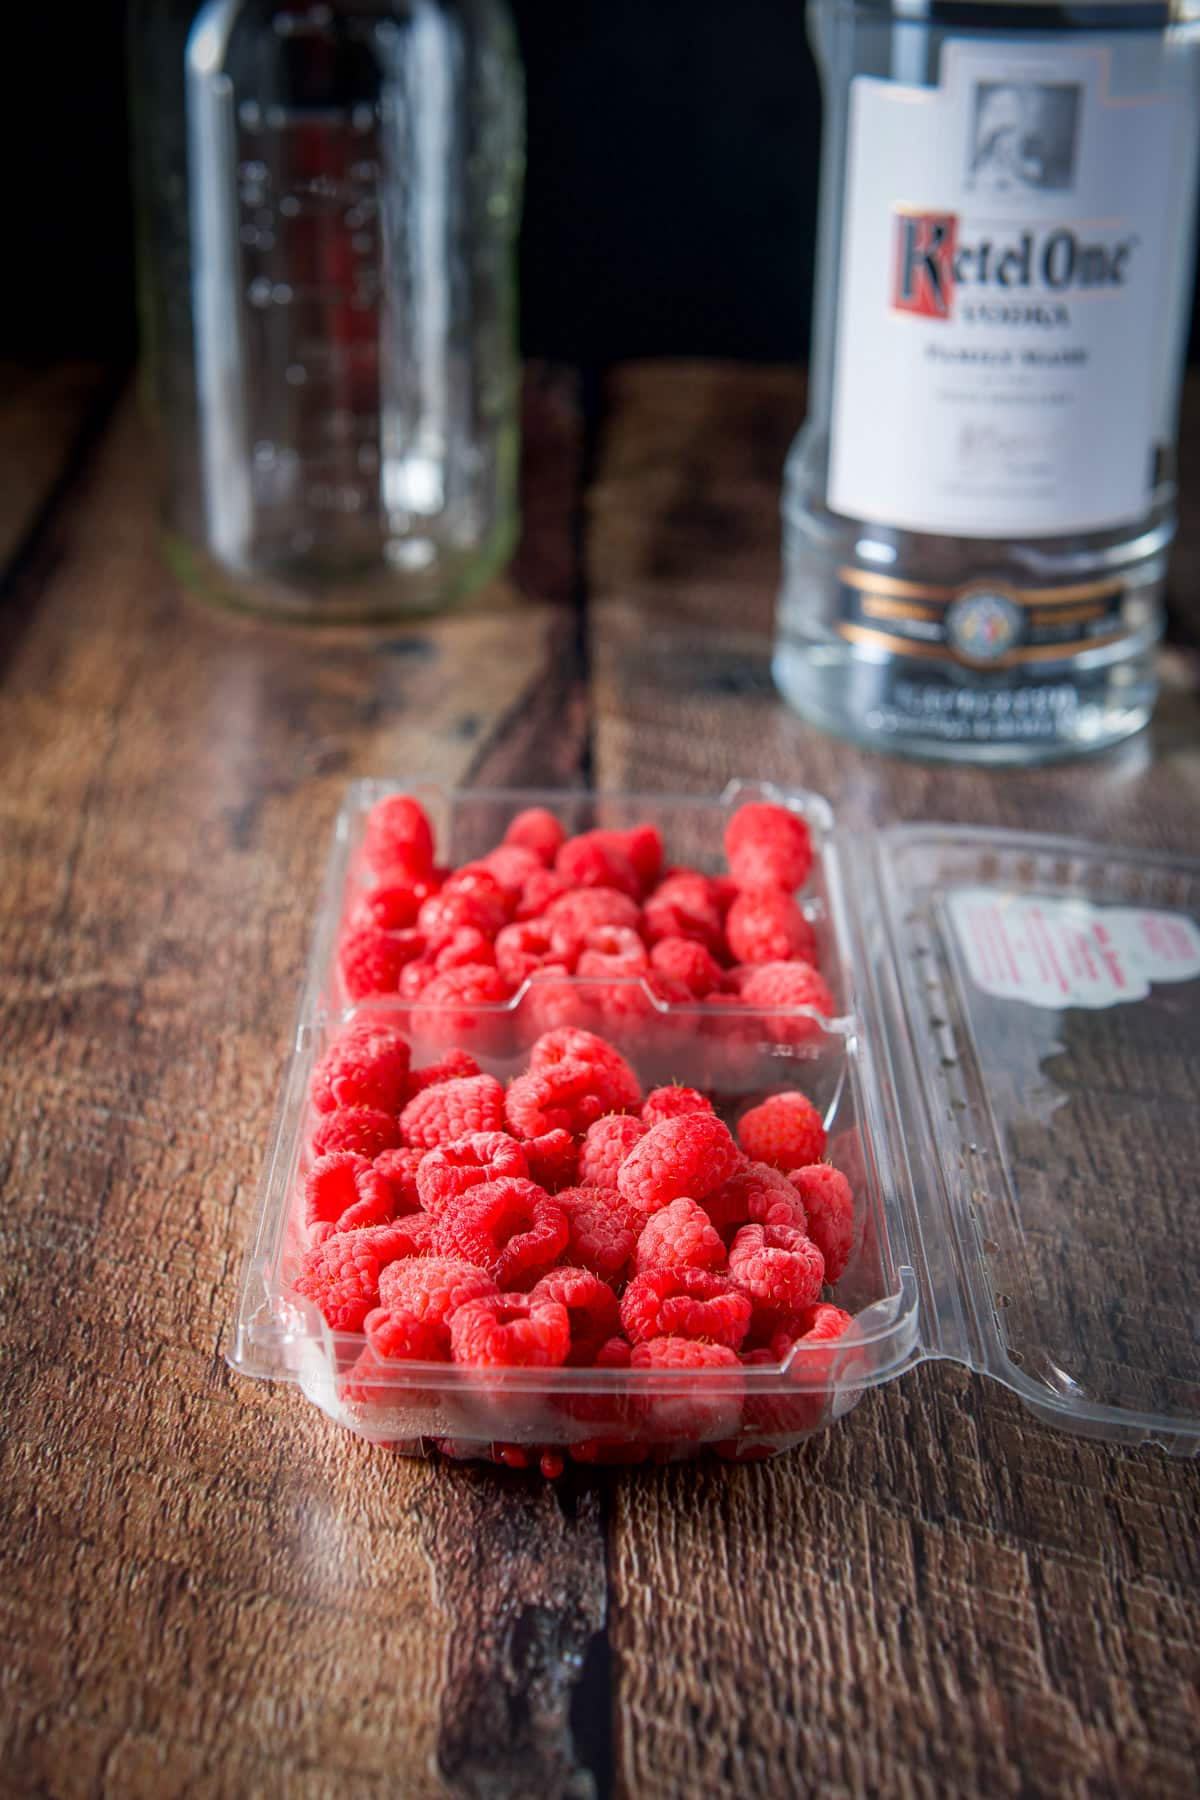 Raspberries in a plastic container, a vodka bottle and jar in the background